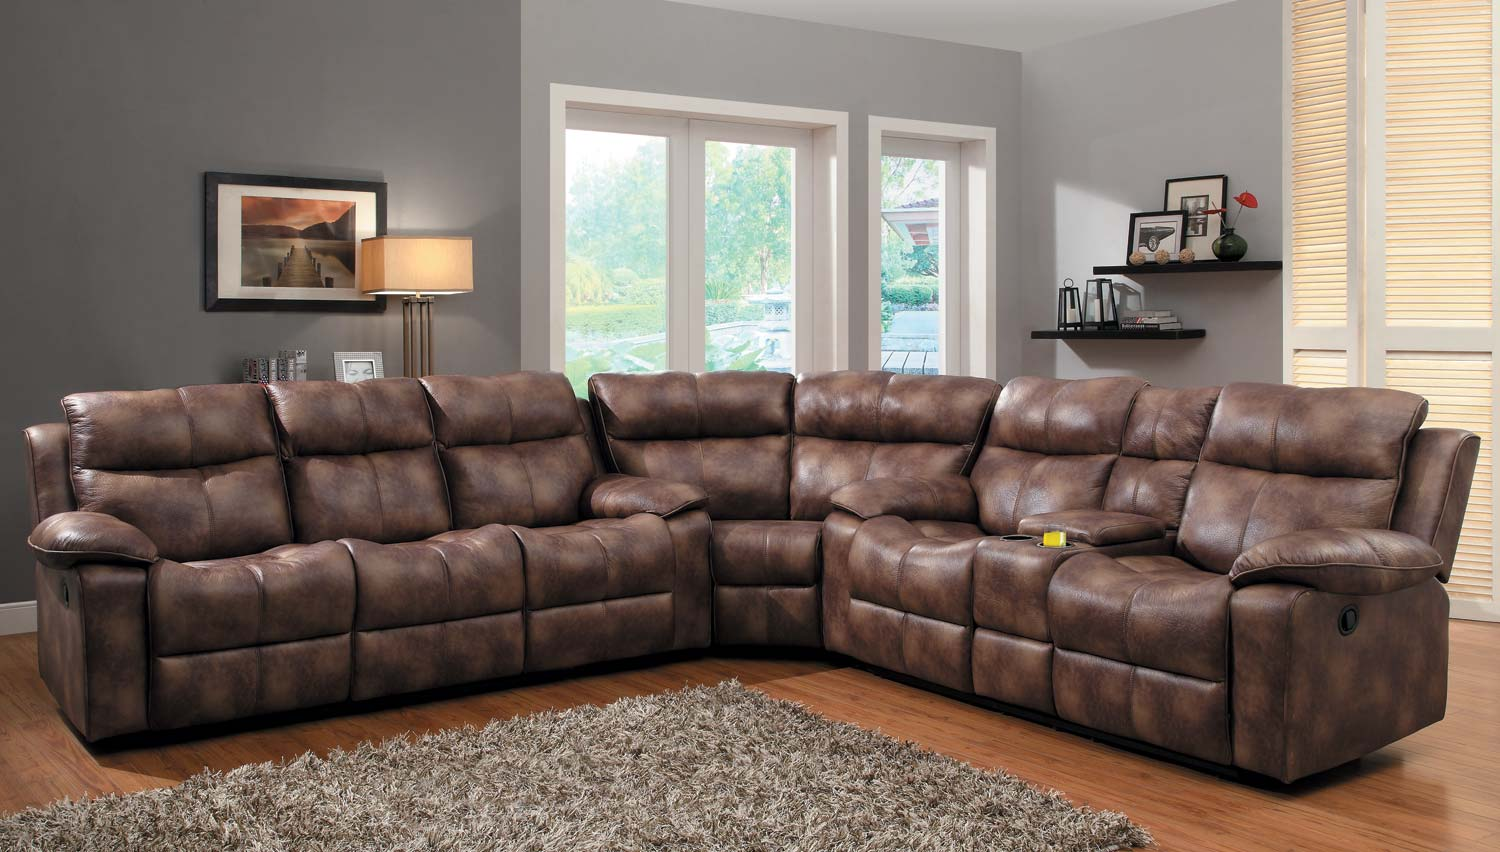 Homelegance Brooklyn Heights Reclining Sectional Sofa Set - Living room furniture brooklyn